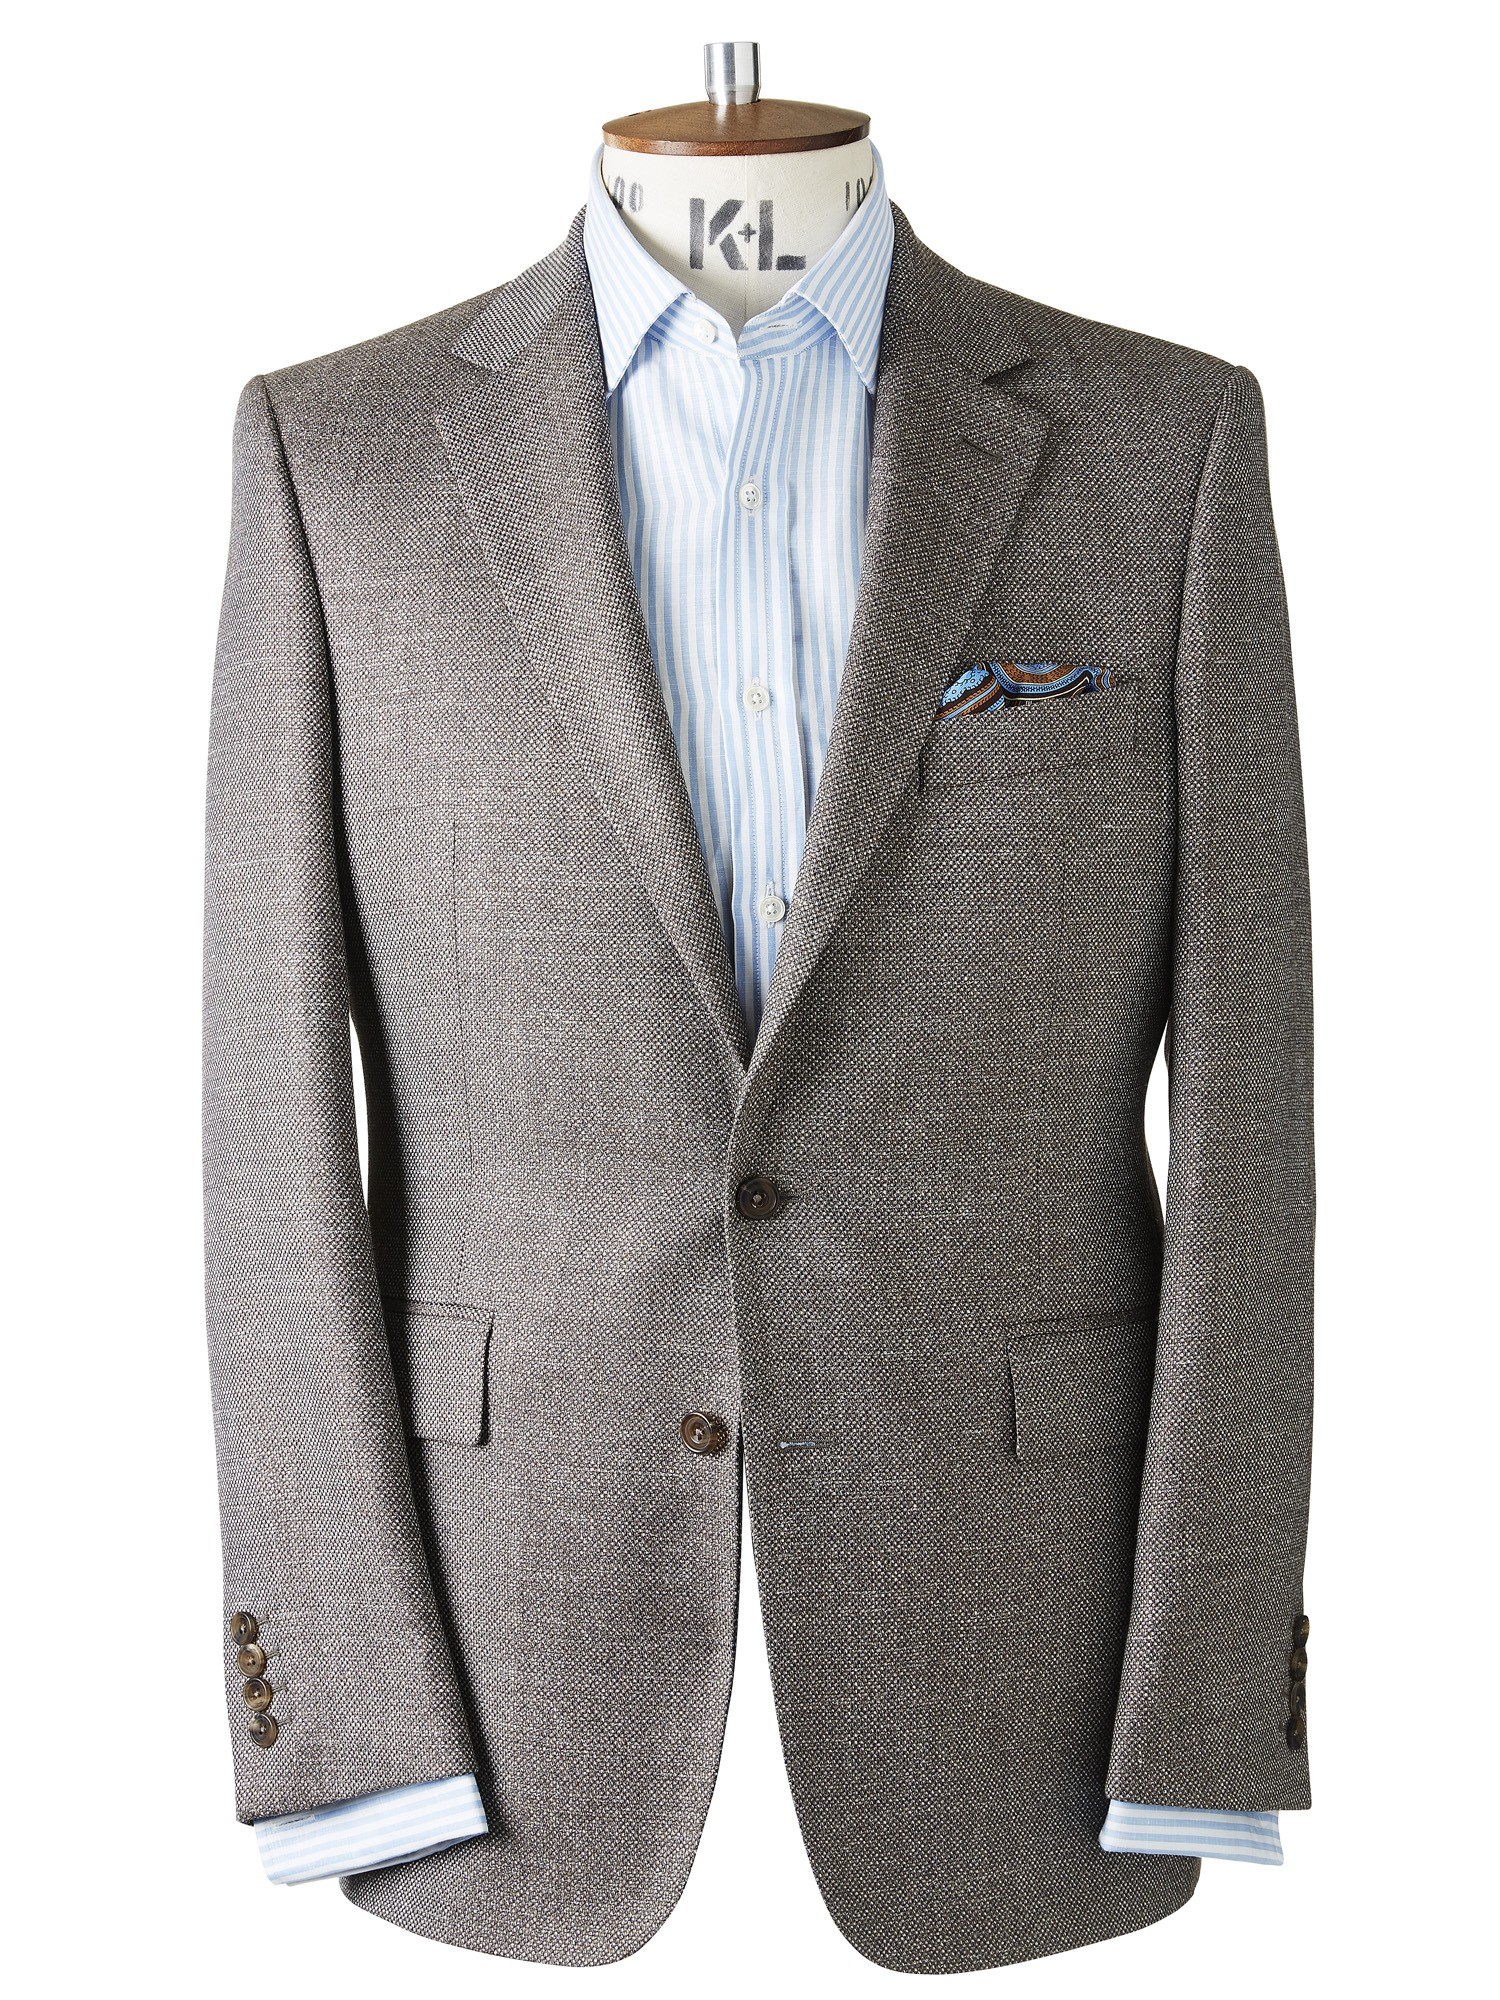 CHESTER BARRIE TEXTURED ALBEMARLE JACKET